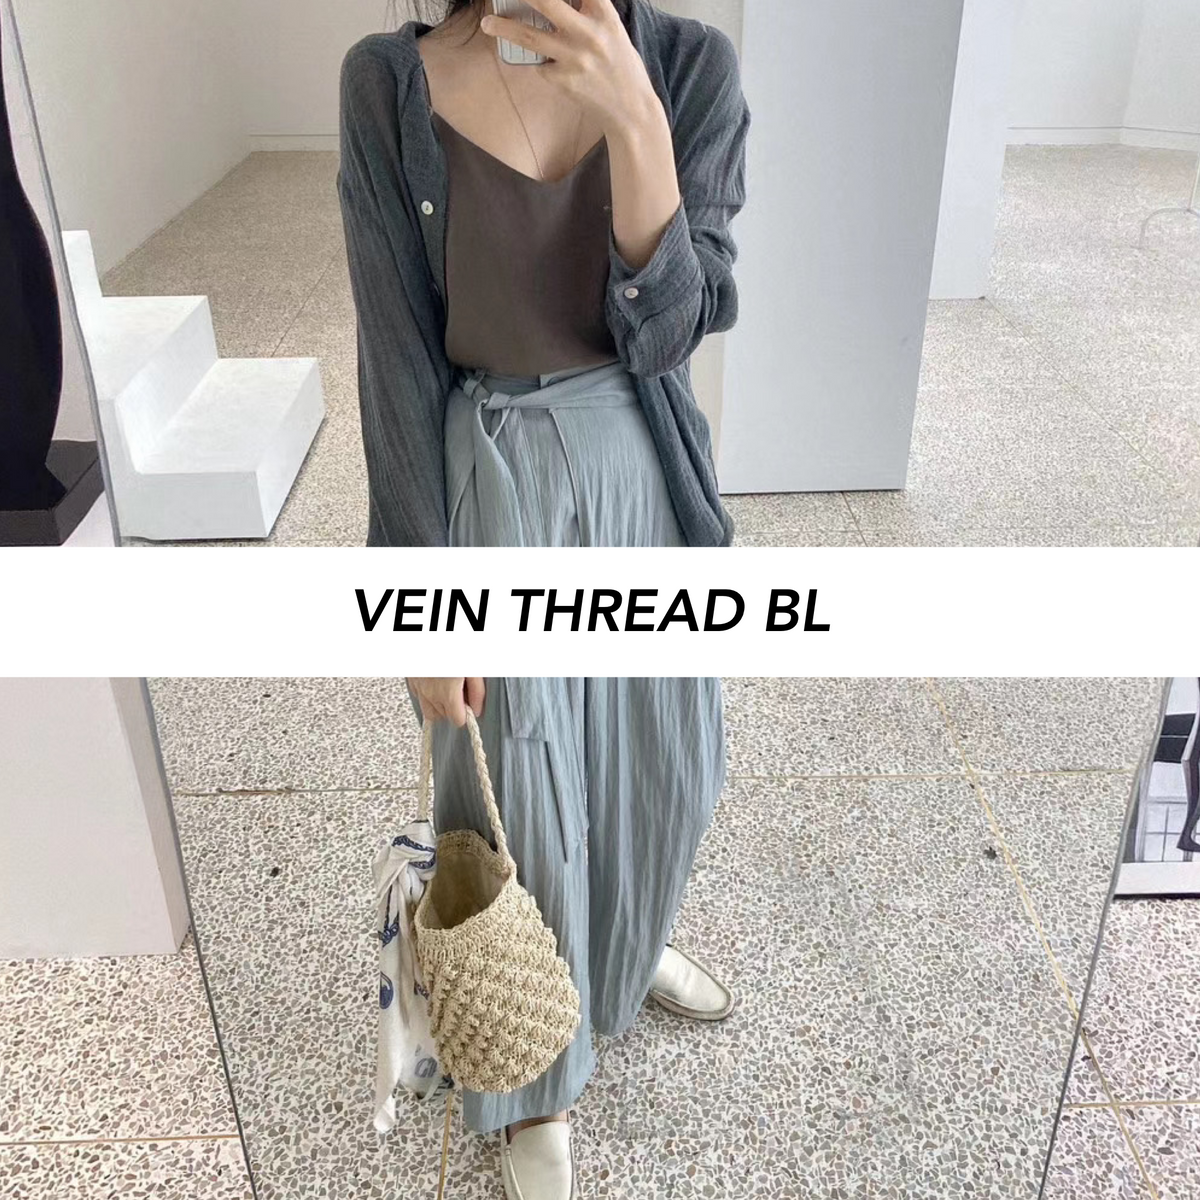 VEIN THREAD BL